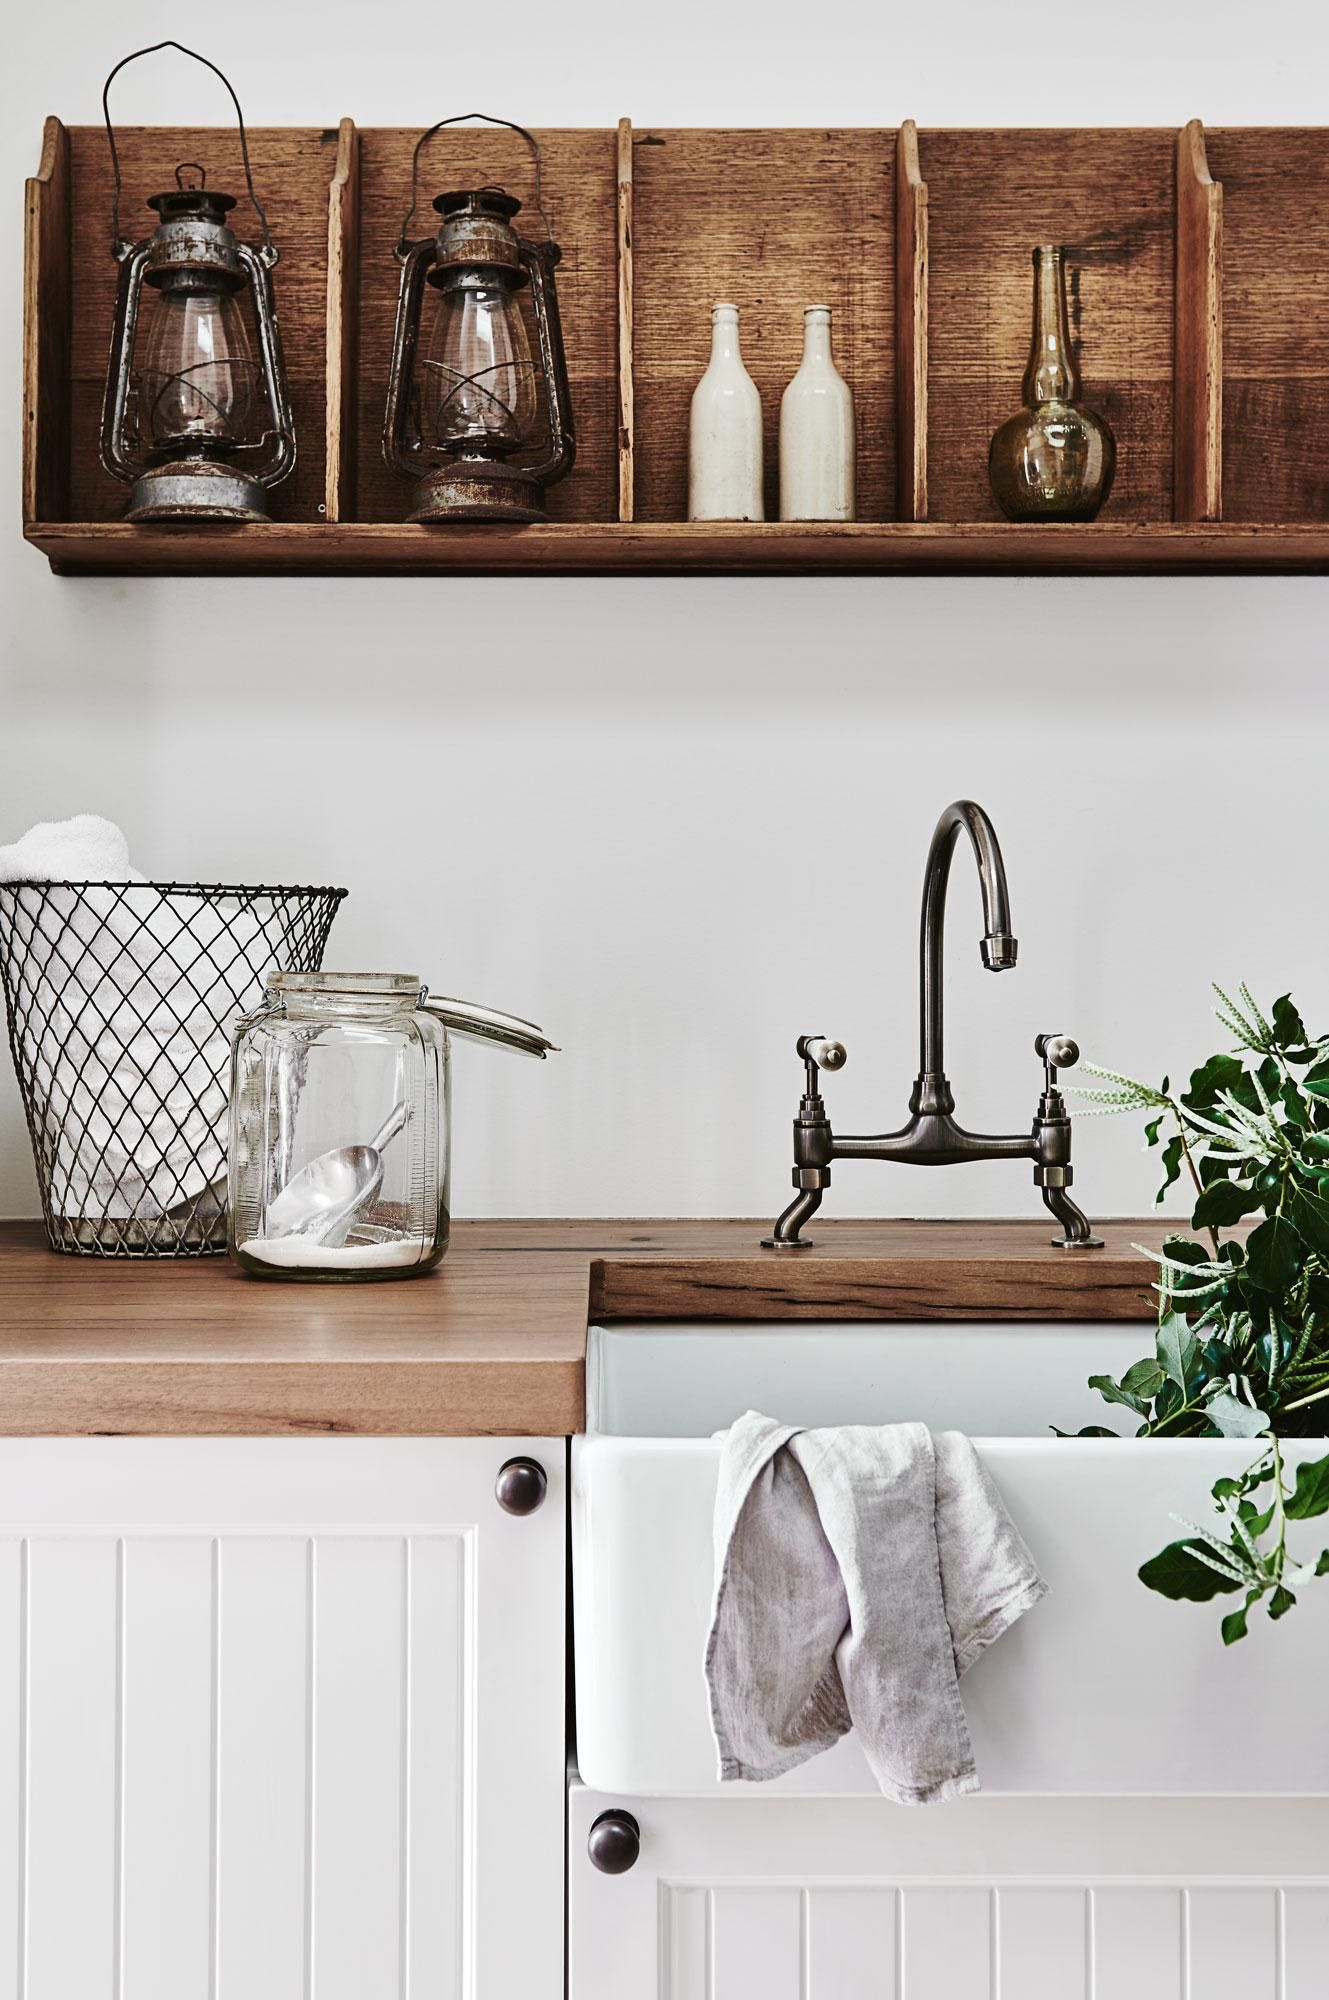 A Frenchinspired farmhouse in Victoria Cupboard Laundry and Sinks